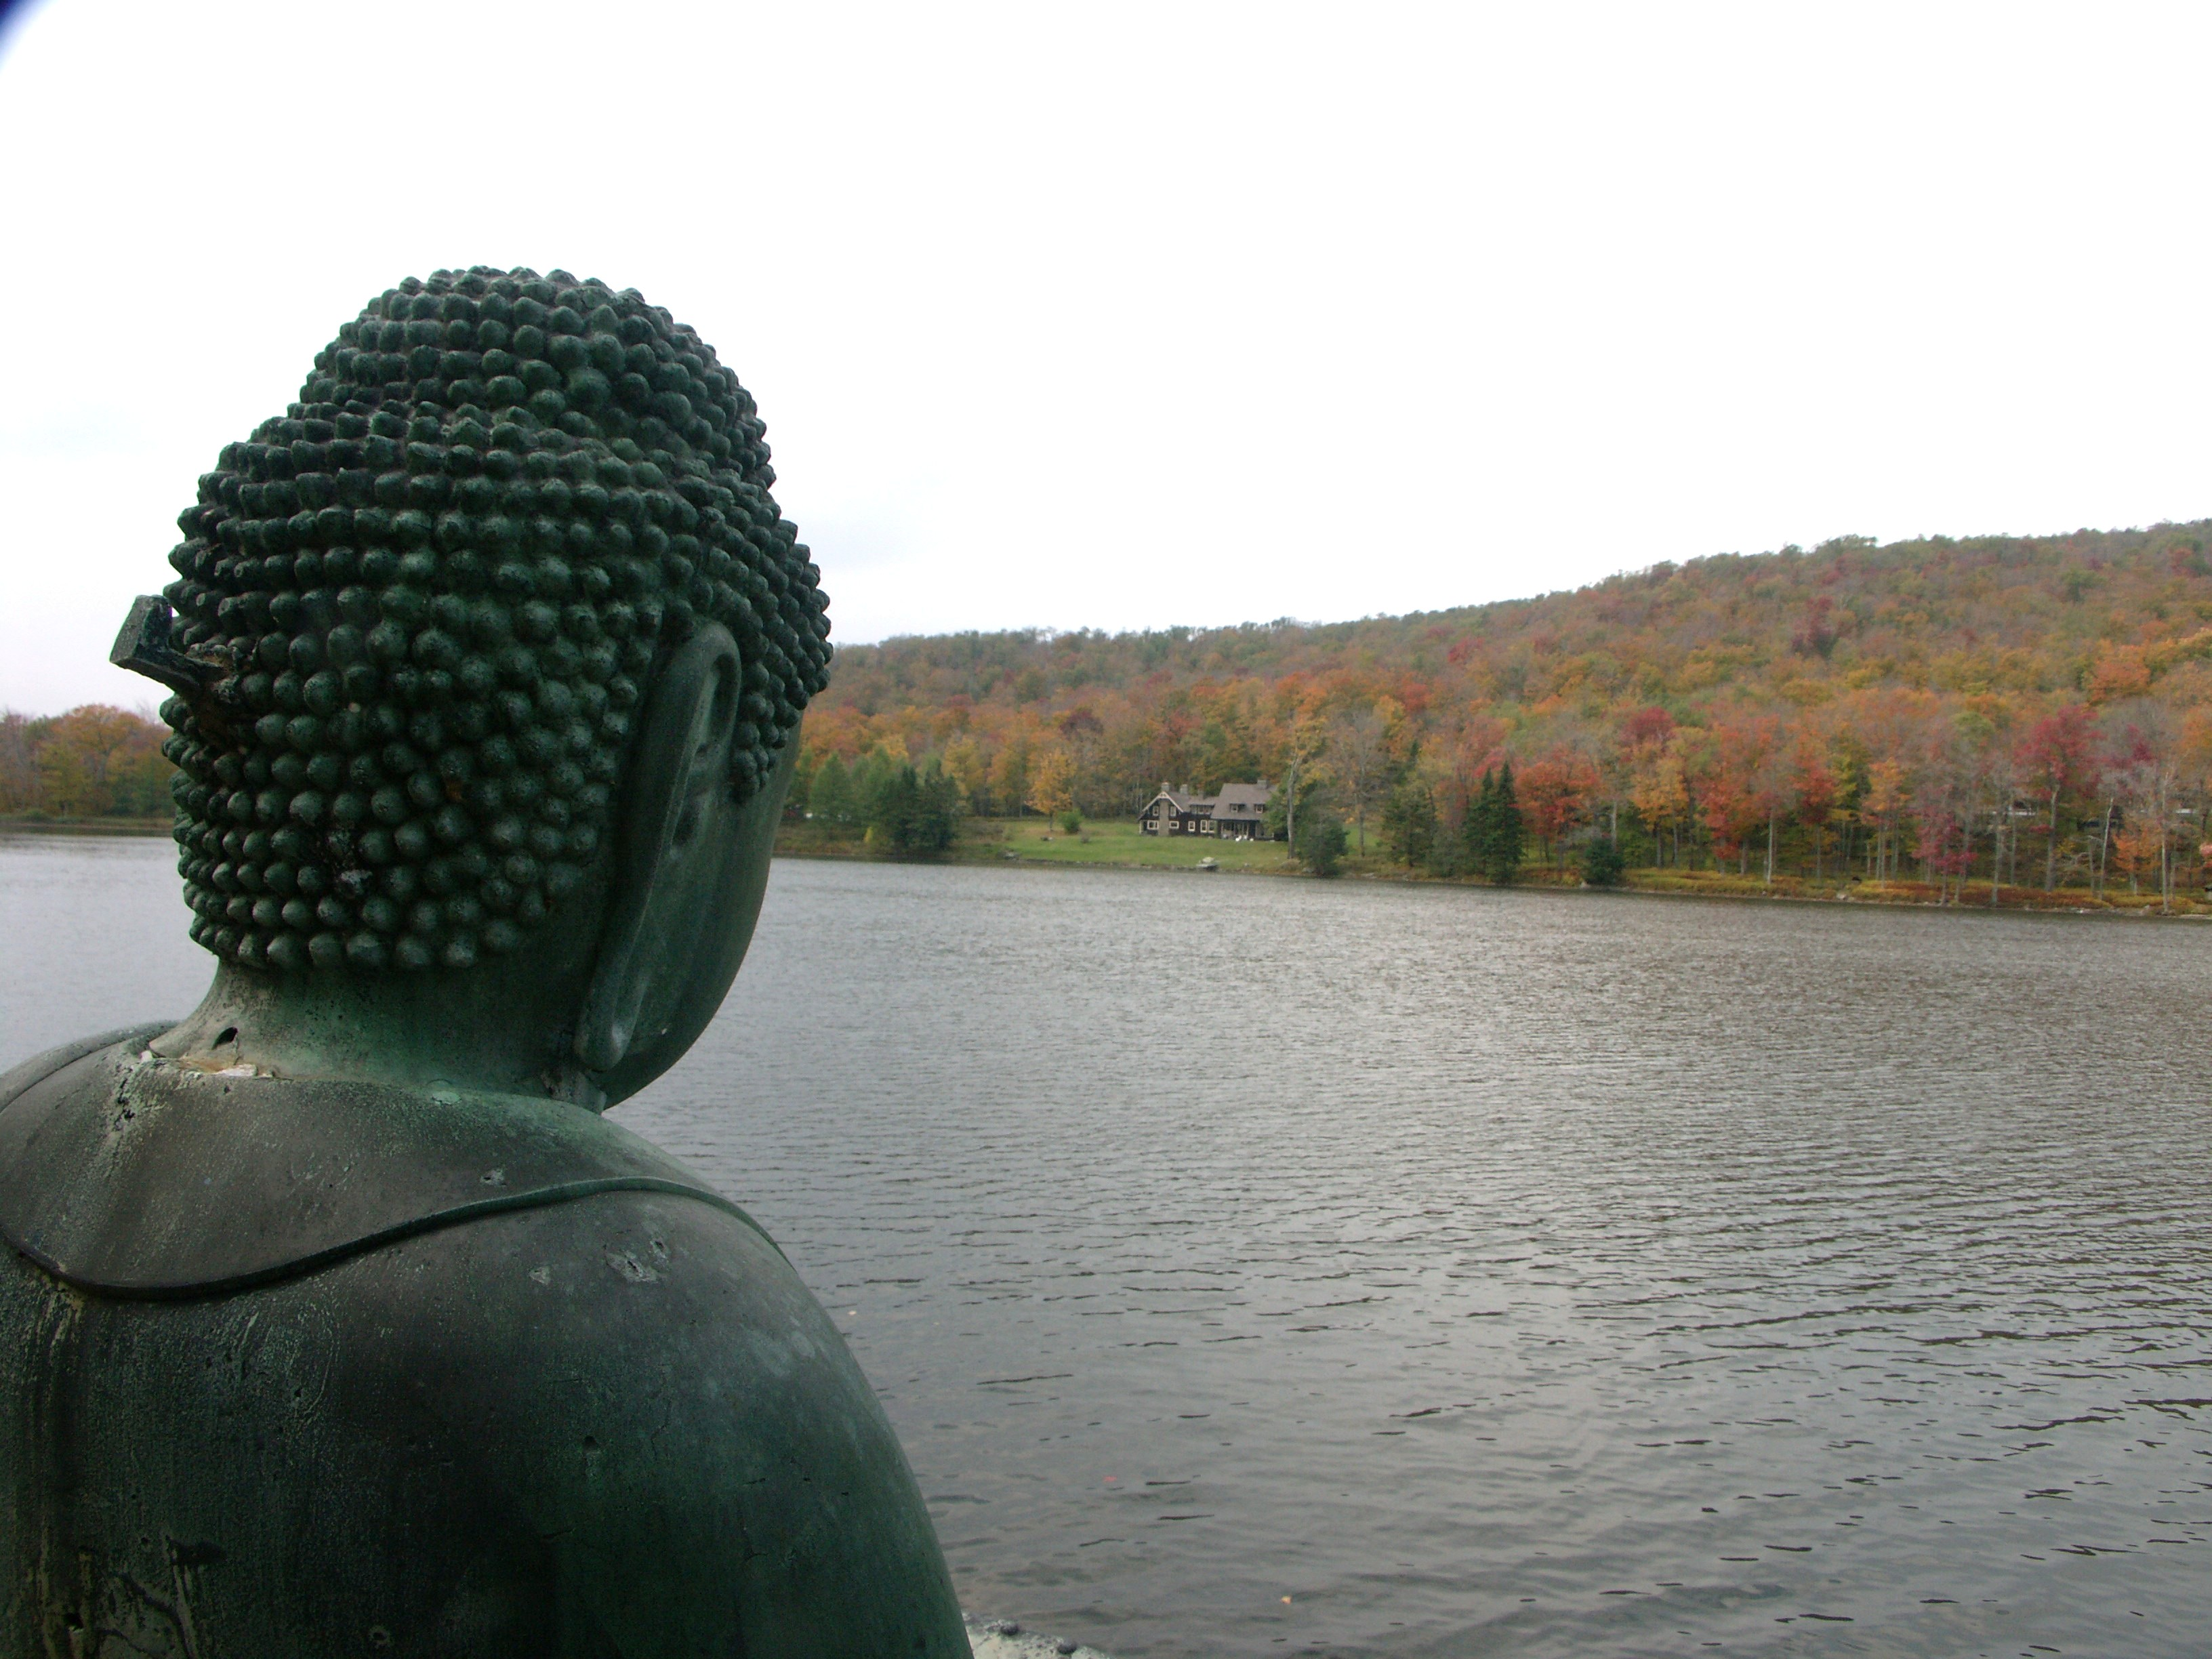 Buddha watching across the lake